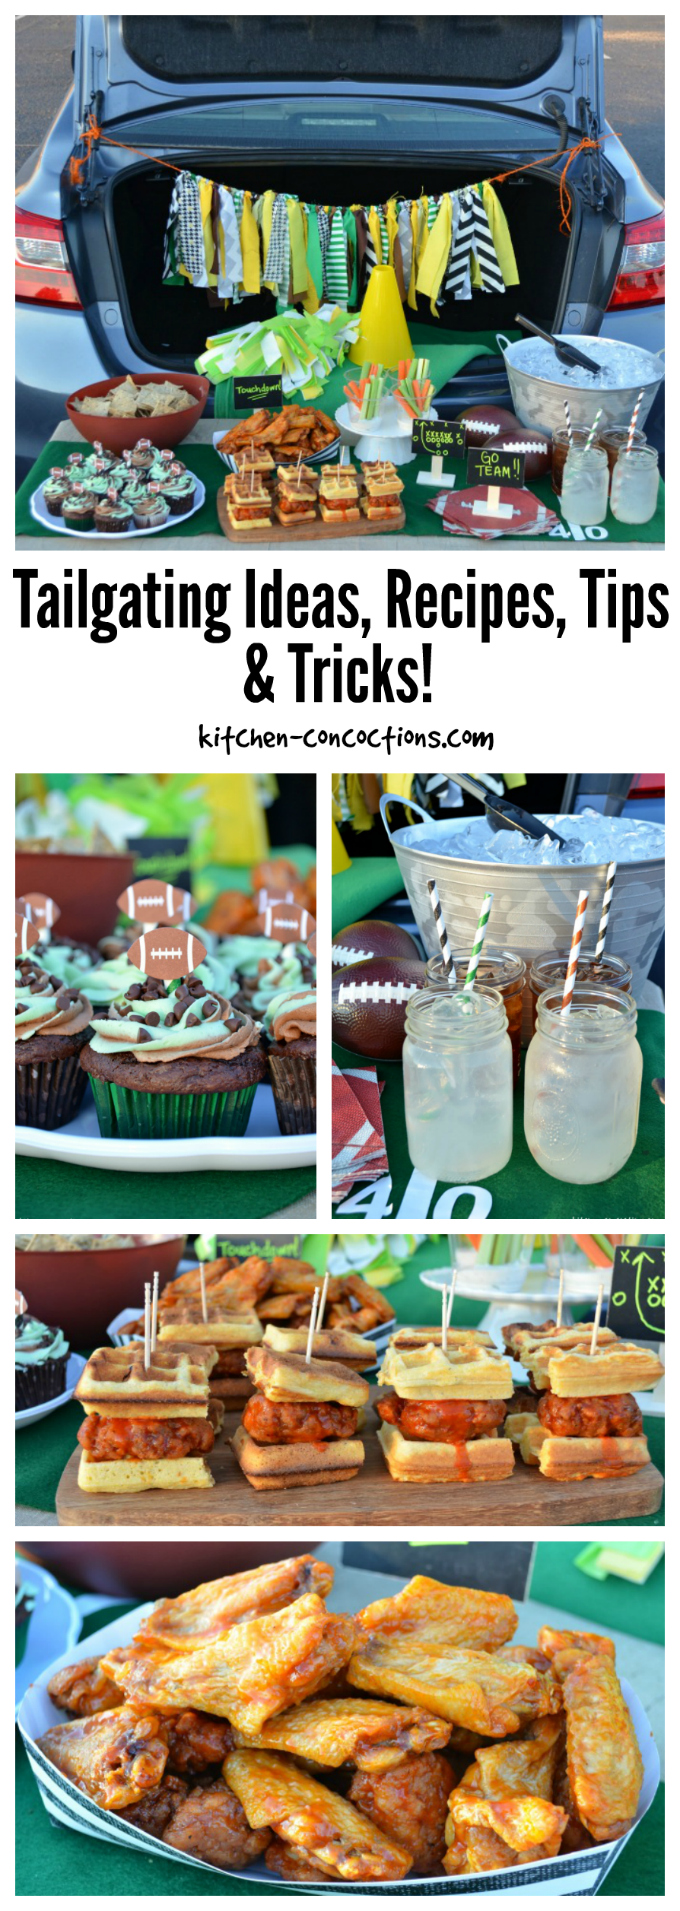 tailgating-ideas-recipes-and-tips-collage